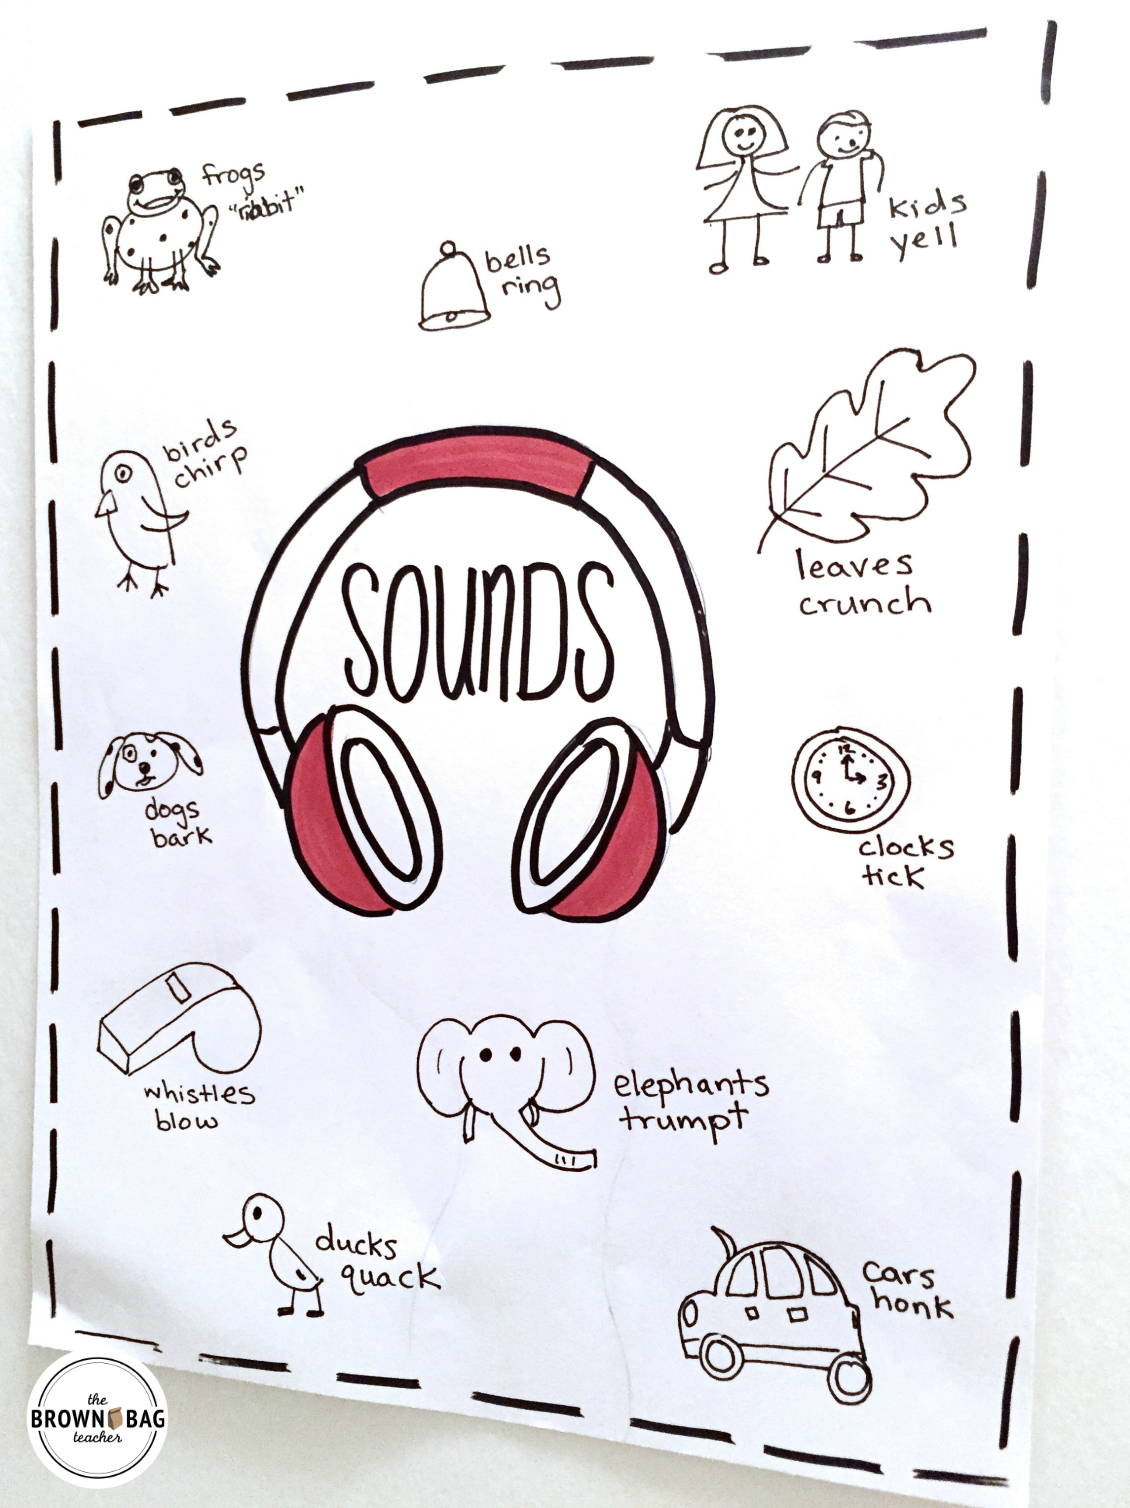 Workbooks sound energy worksheets : Sound: 1st Grade Science - The Brown Bag Teacher